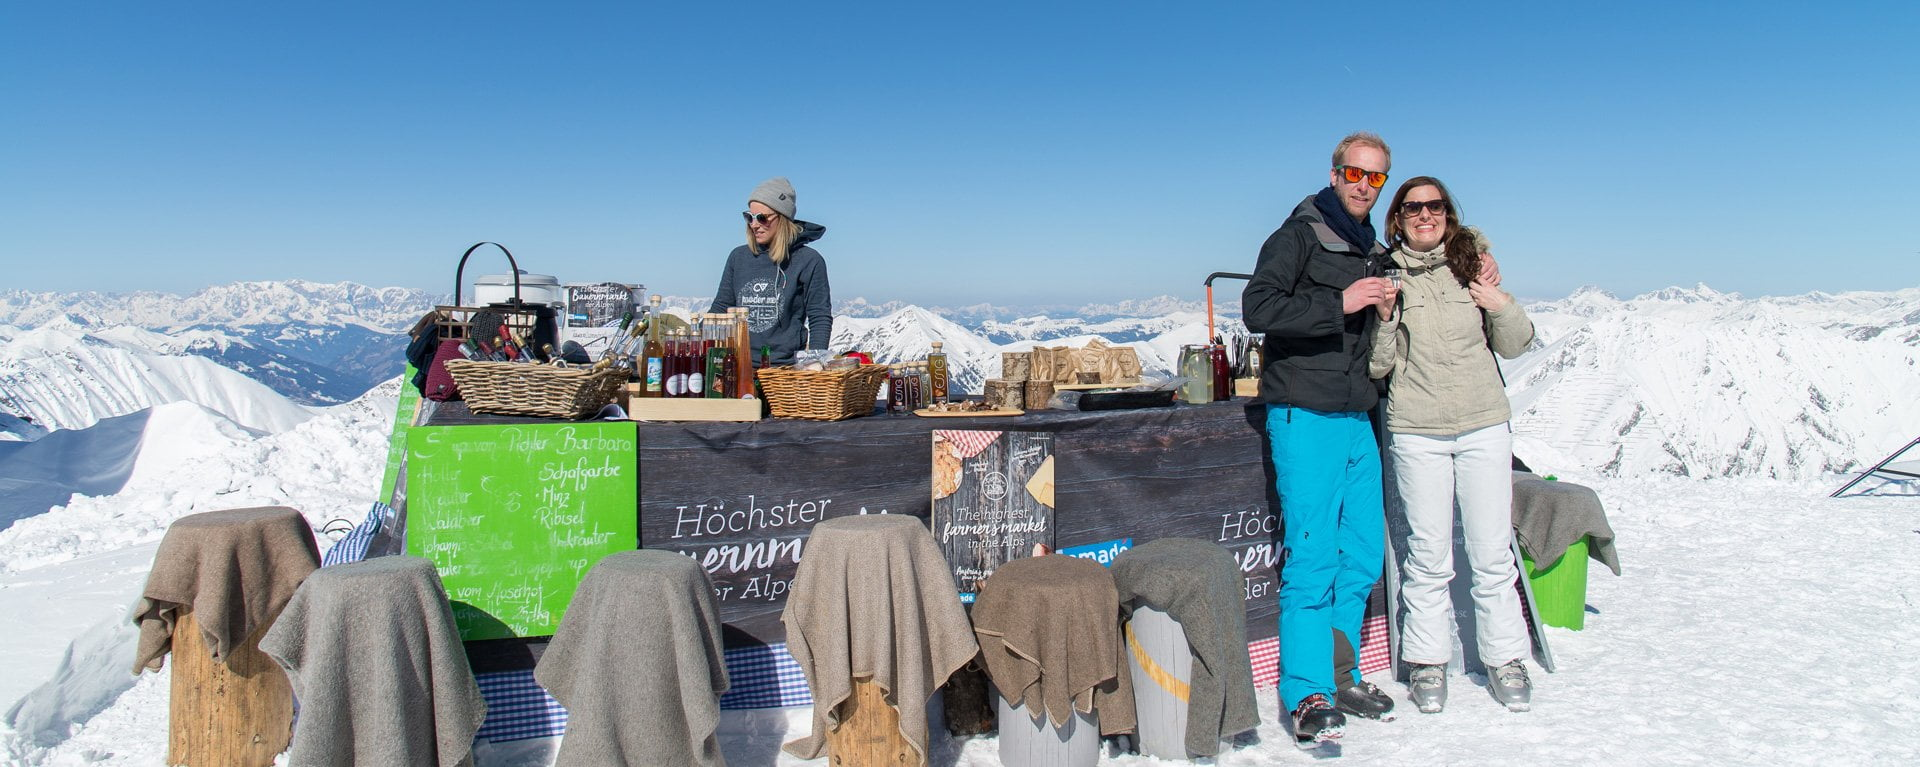 Great Skiing & Great Wine in Ski amadé in Gastein from 10.03. until 17.03.2018